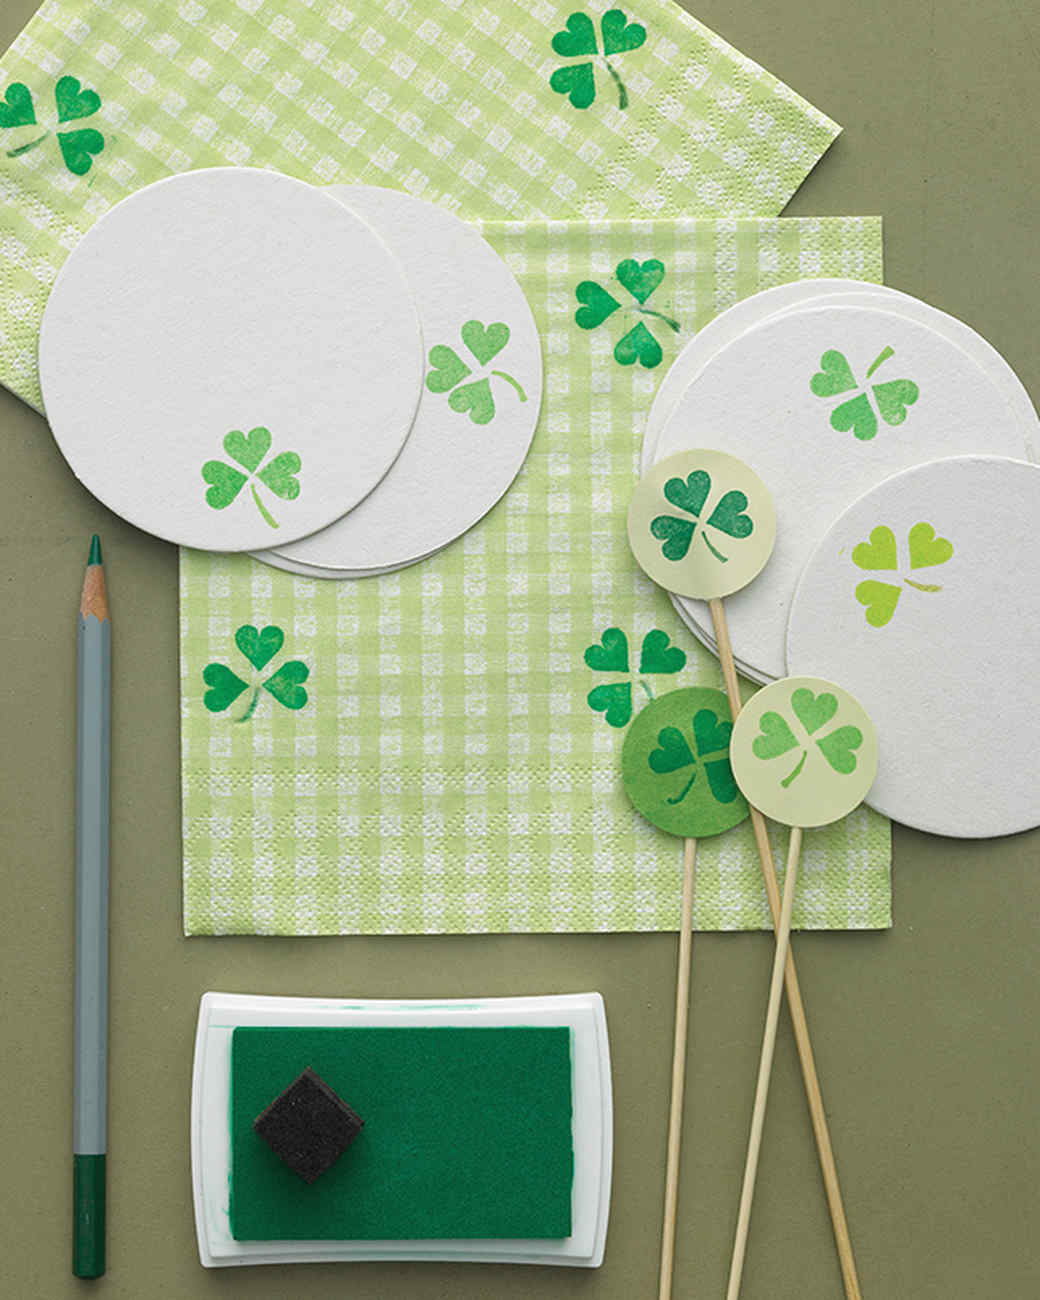 St patrick 39 s day crafts and decorations martha stewart for St patricks day decorations for the home